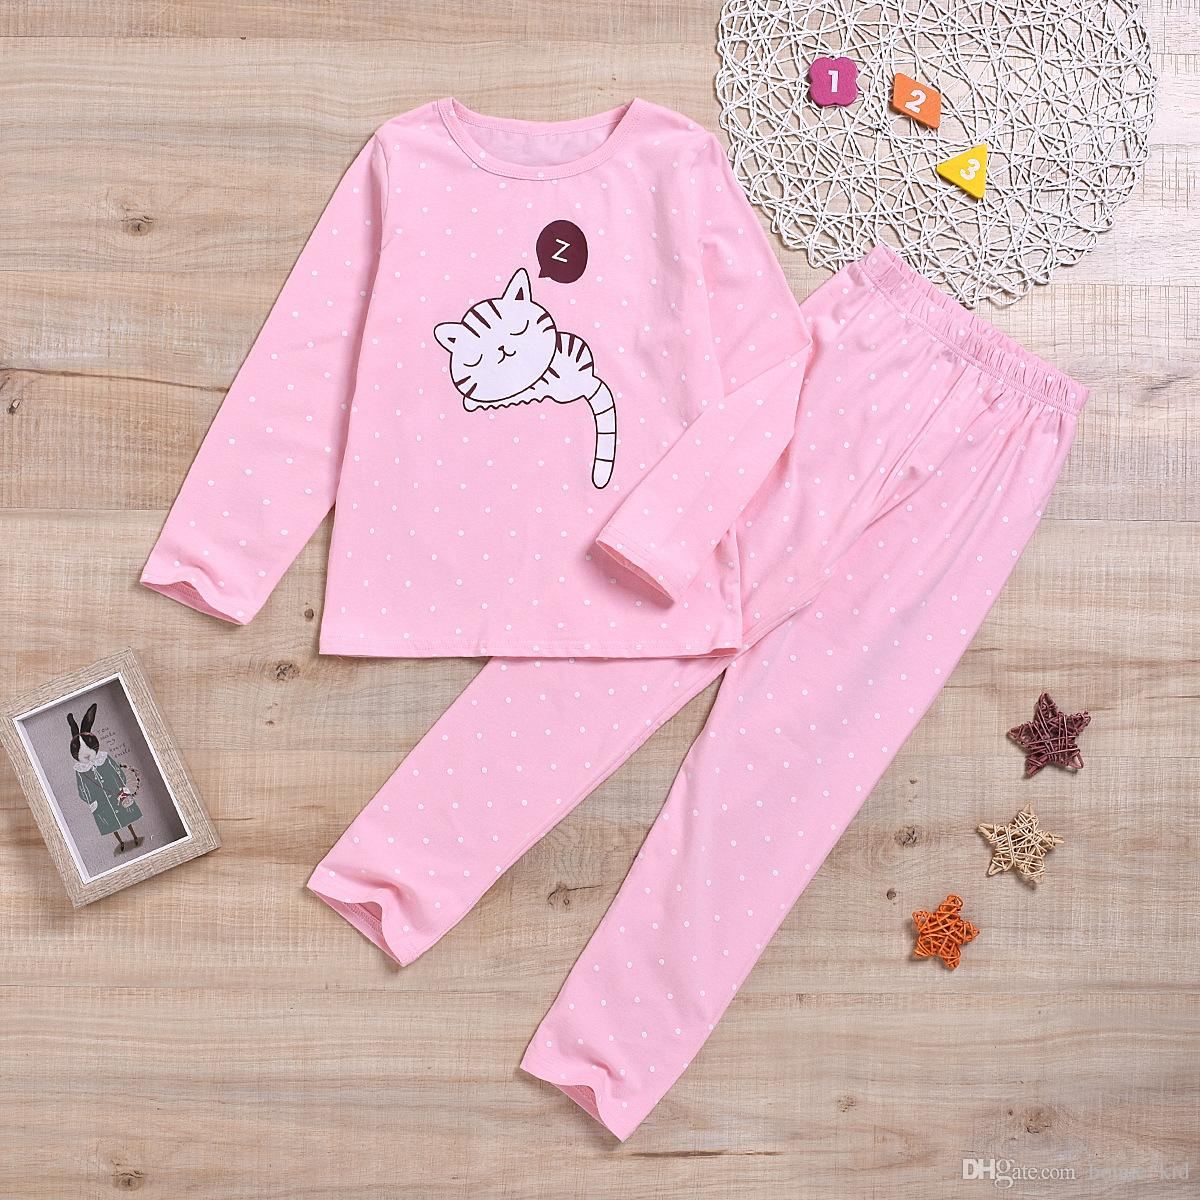 Infant Toddler Baby Girls Cute Cat Print Sweatshirt Tops Pants Outfits Long Sleeve Fall Winter 2pcs Clothes Set